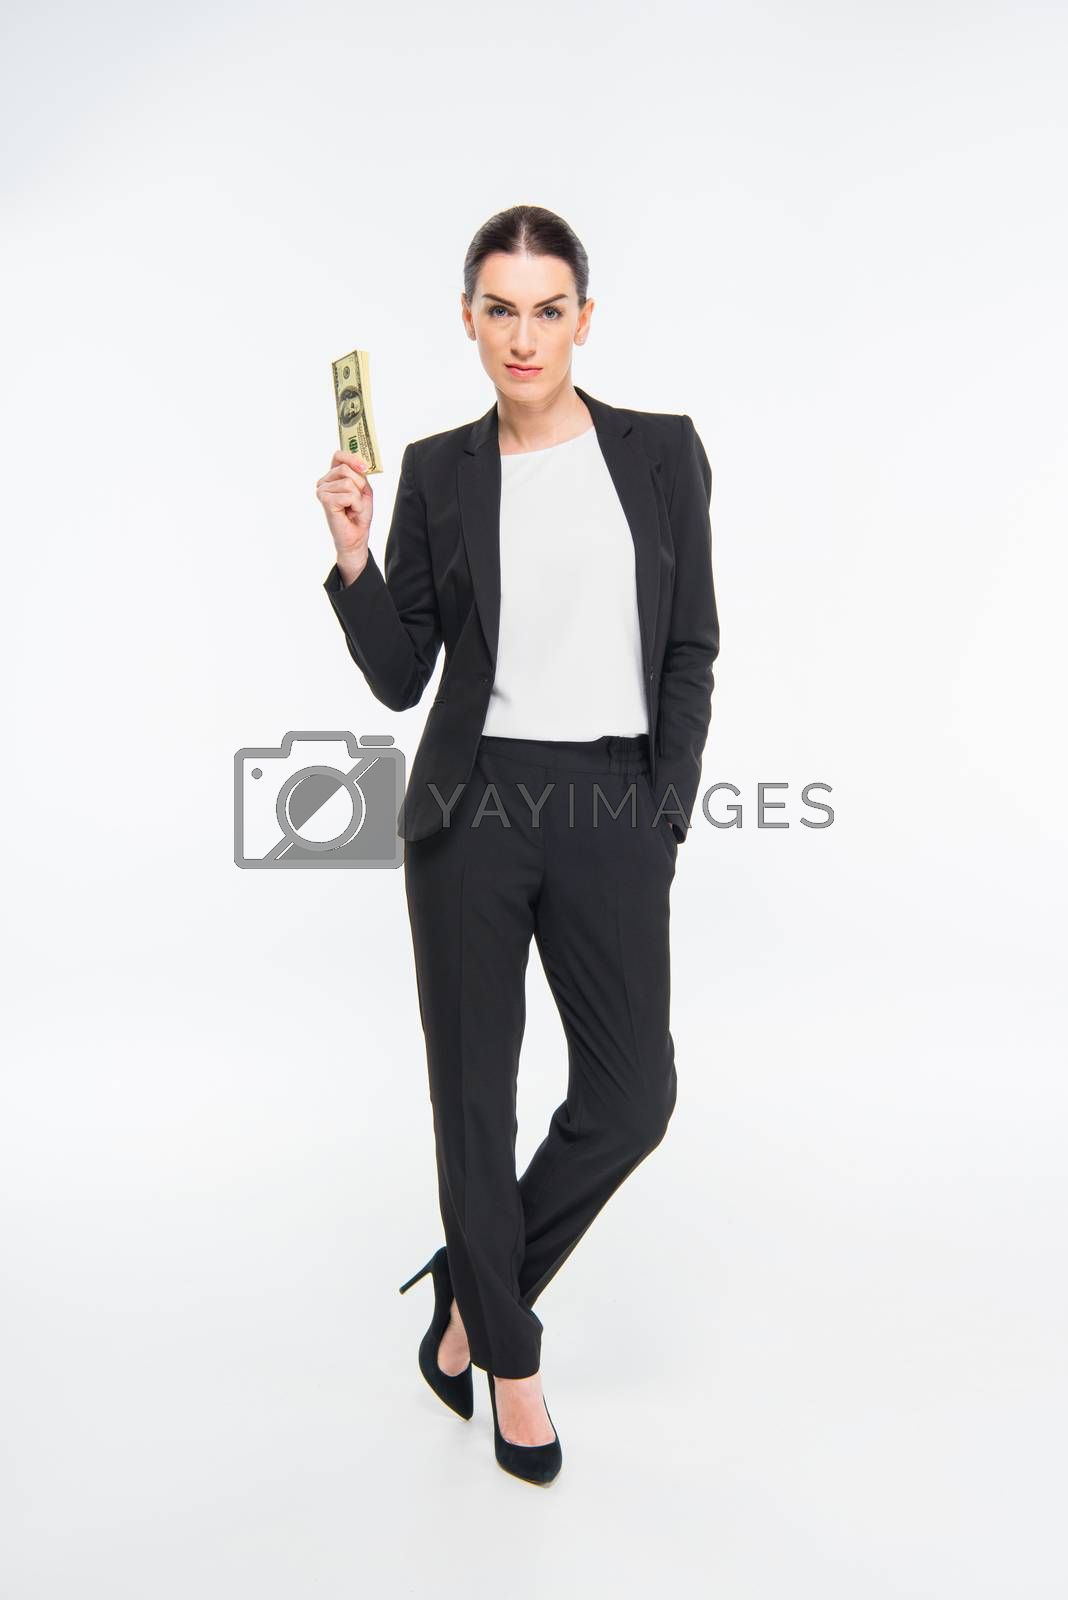 Professional young businesswoman holding dollar banknotes and looking at camera